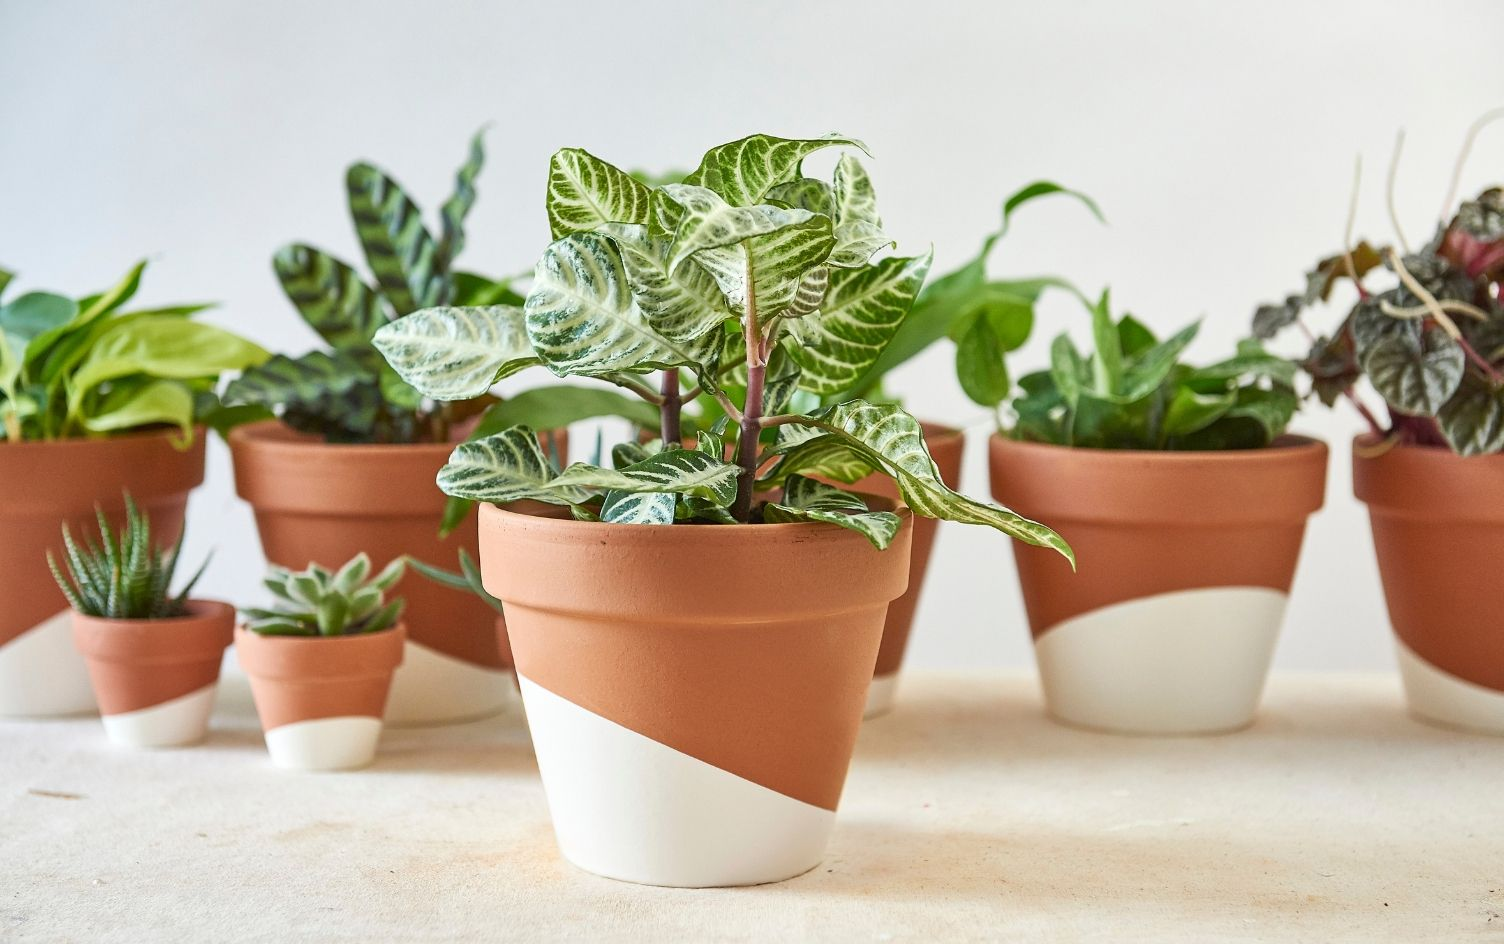 Plants could help make you happy and healthy (says science)